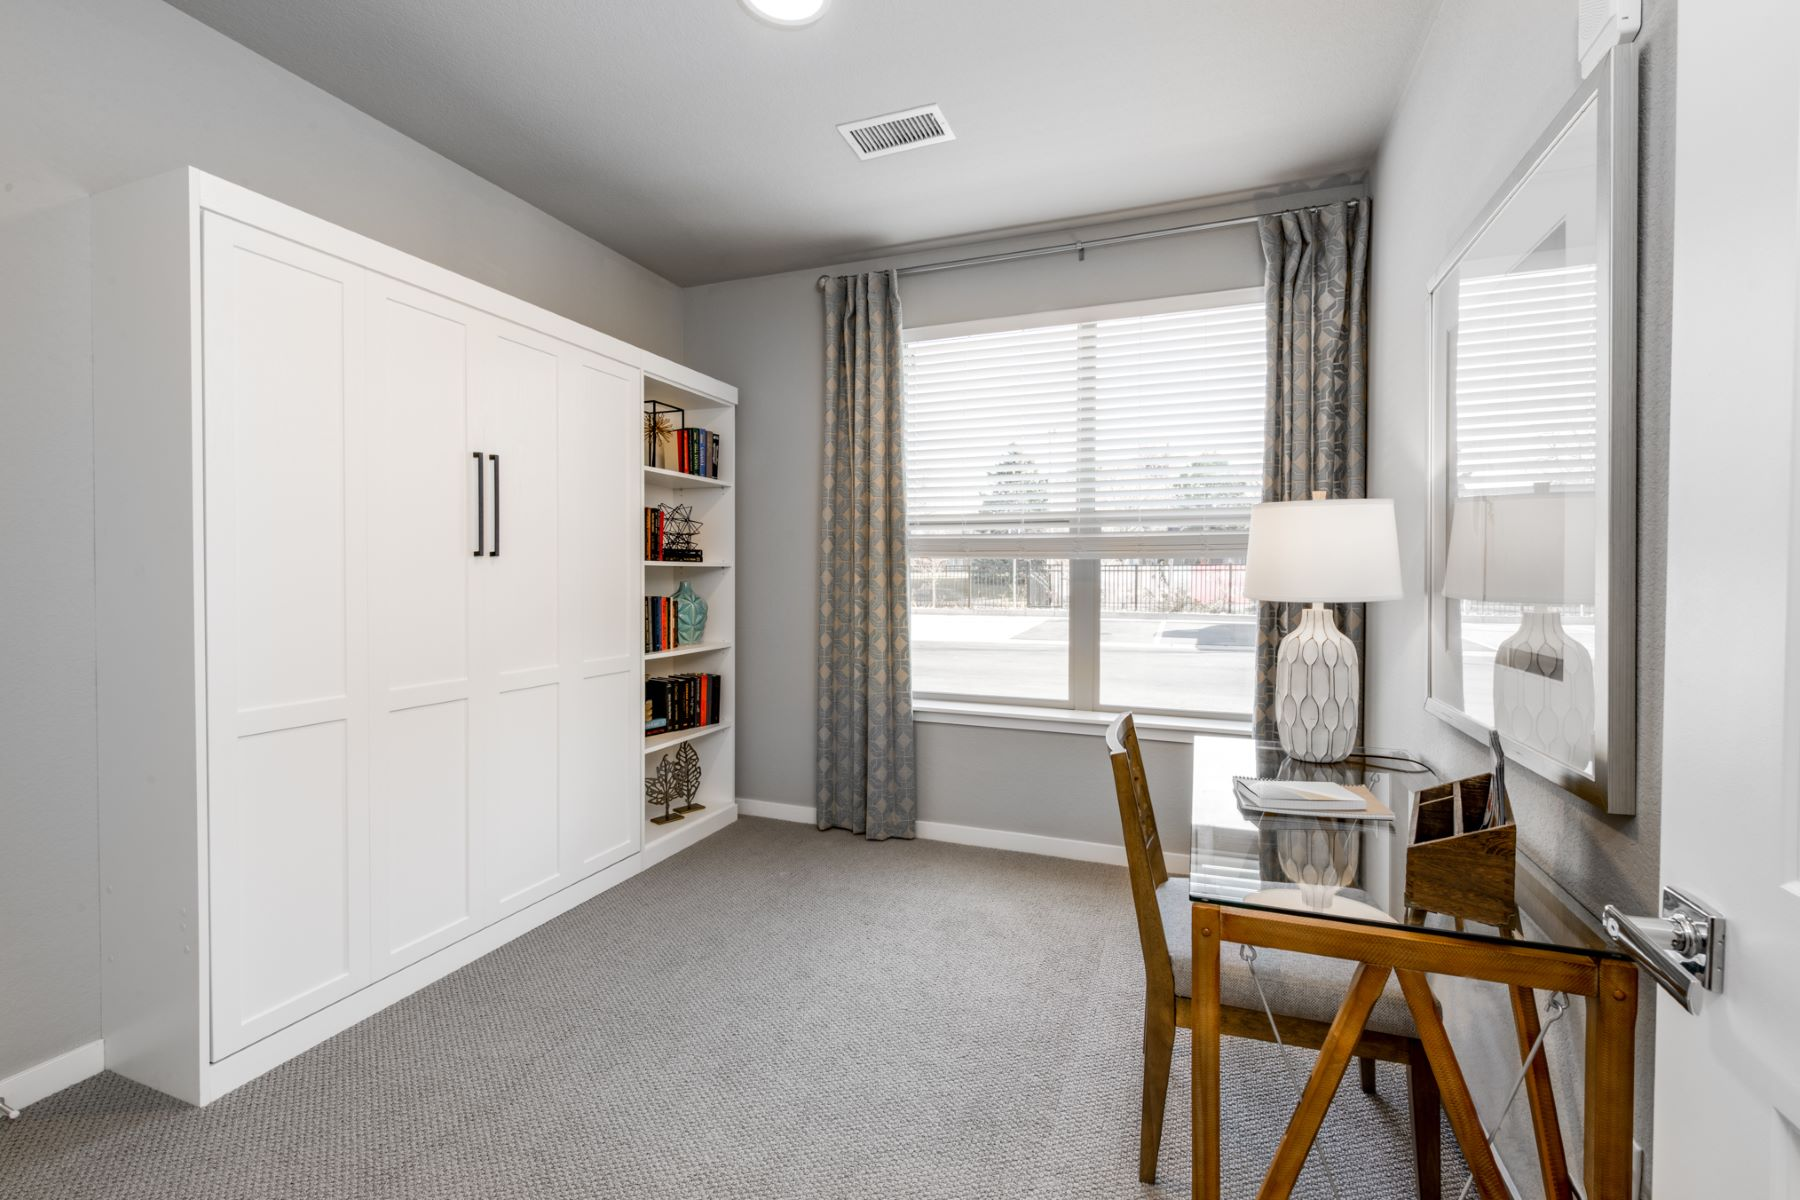 Additional photo for property listing at 155 South Monaco Parkway #116 155 S Monaco Pkwy #116 Denver, Colorado 80224 United States